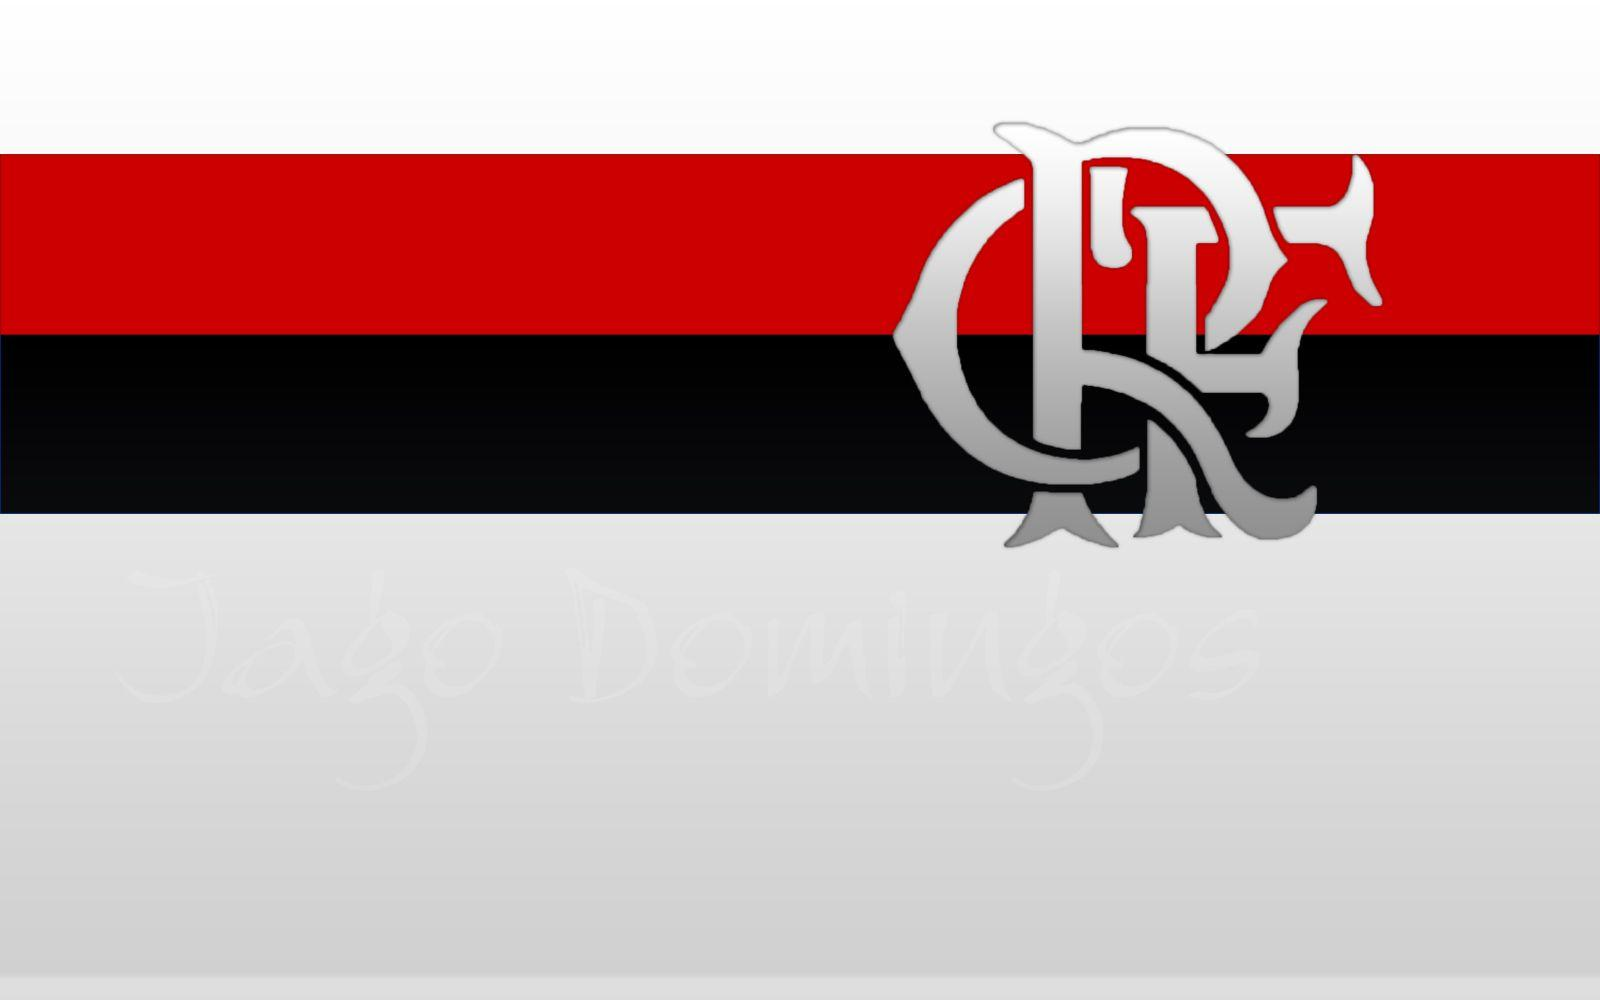 Flamengo HD Wallpapers